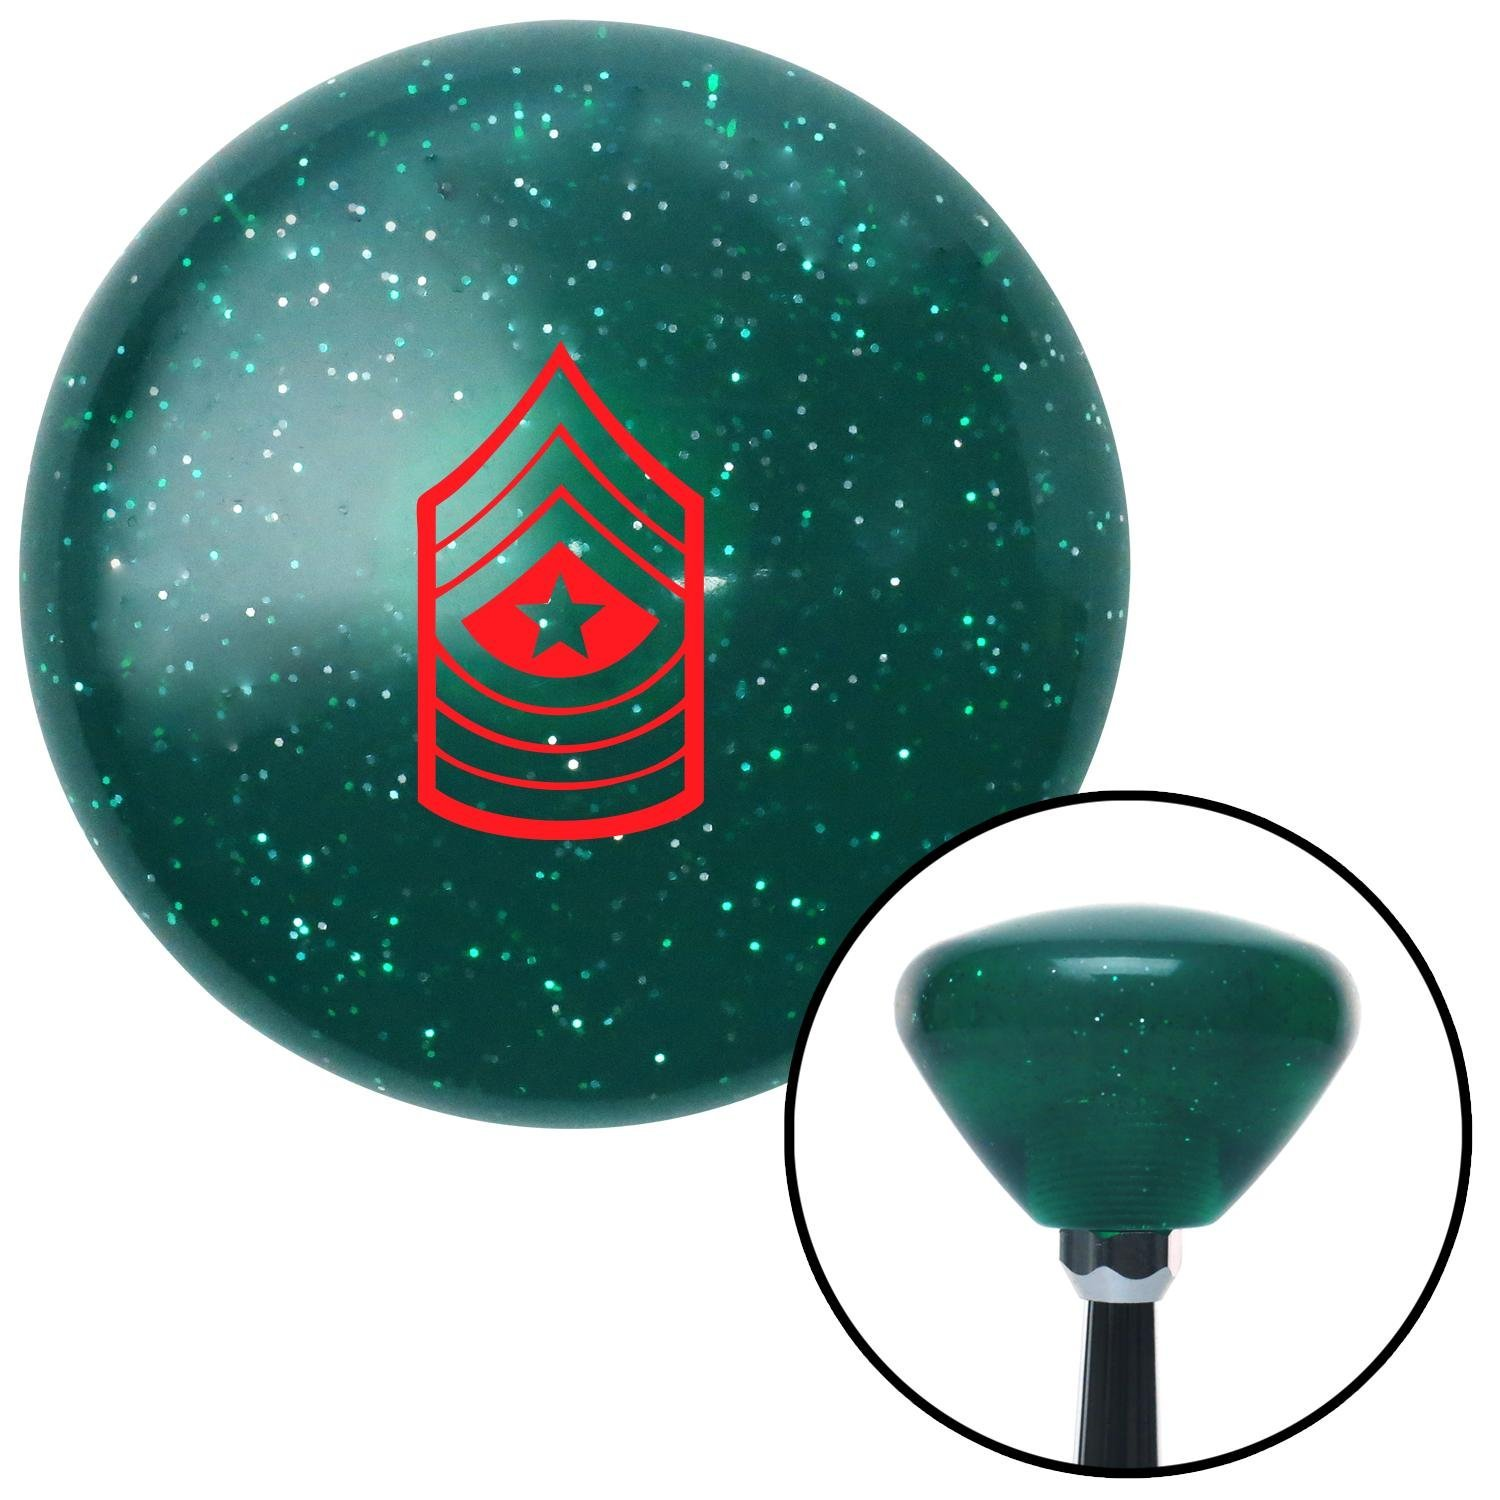 Red 10 Sergeant Major American Shifter 207390 Green Retro Metal Flake Shift Knob with M16 x 1.5 Insert